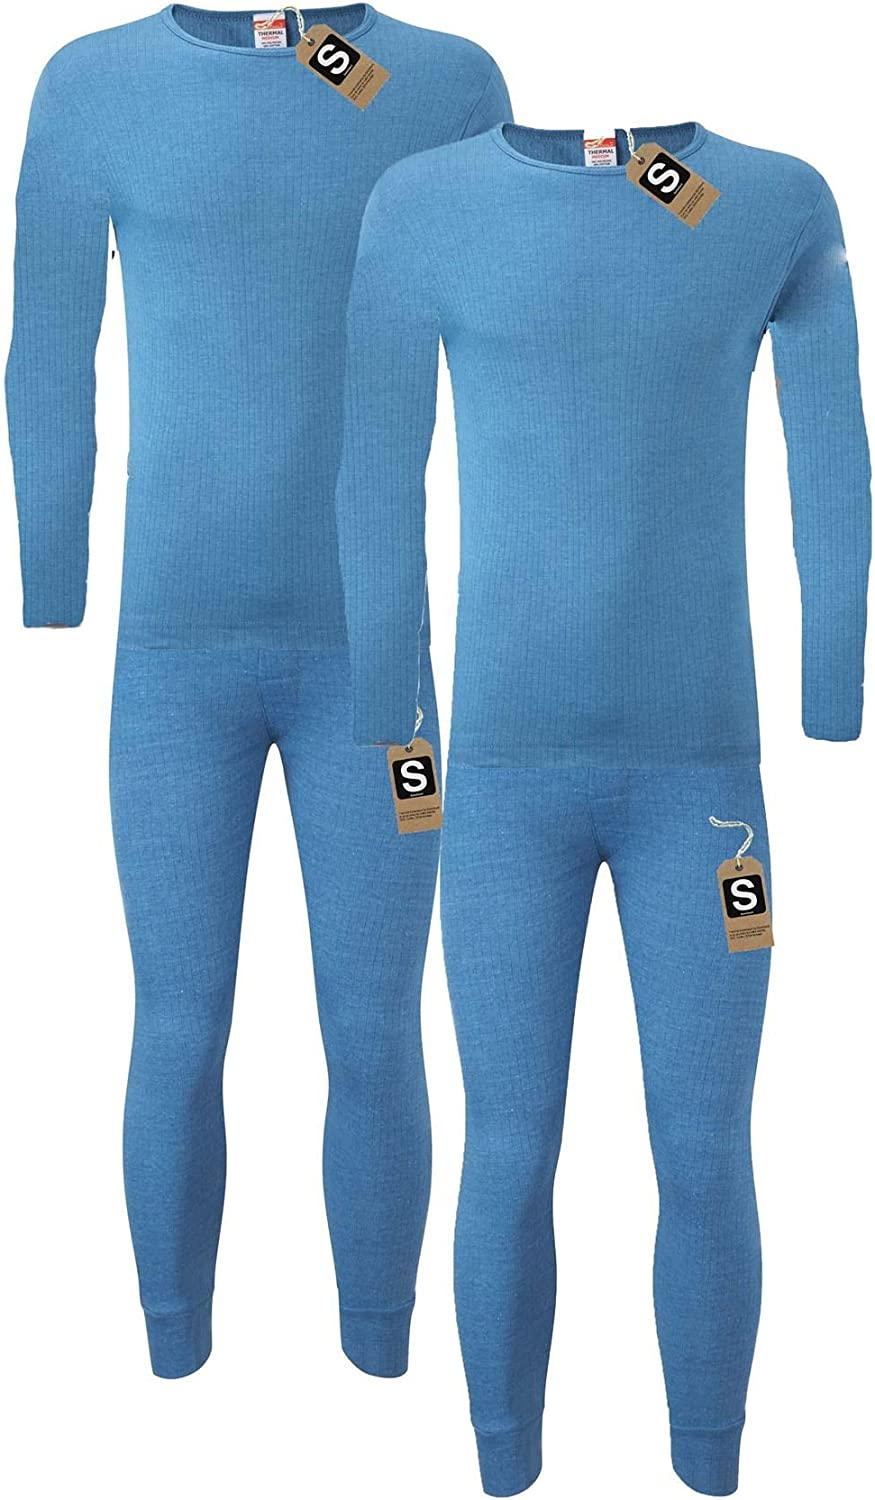 Long Sleeve Top /& Long Johns Set Heatwave/® Pack of 2 Mens Extreme Thermal Underwear Set Winter Thermals